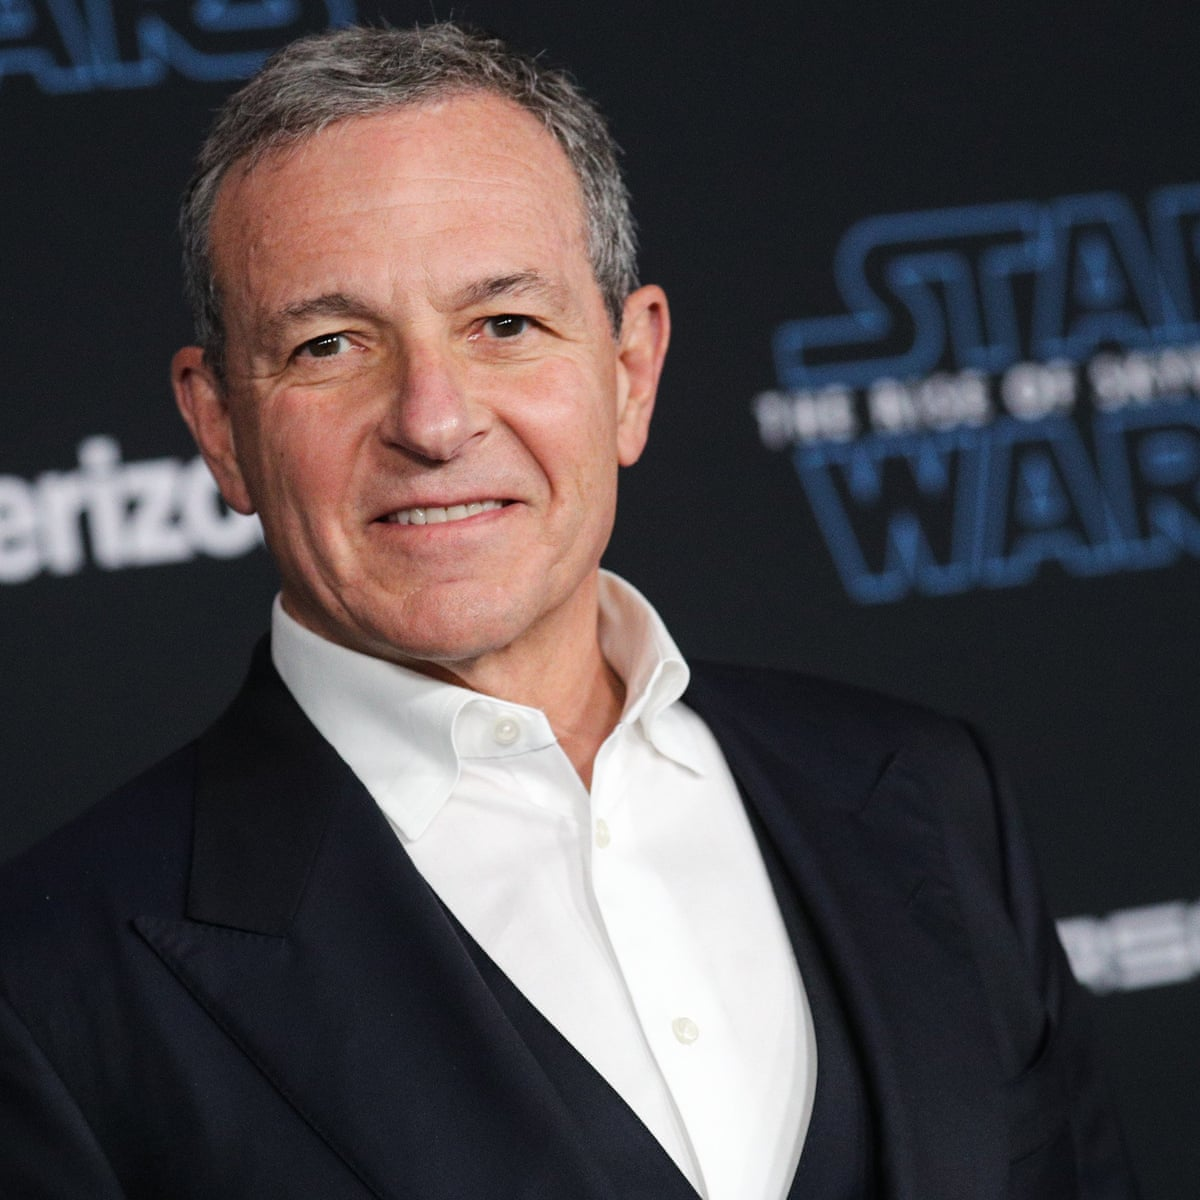 Disney S Bob Iger Stays On To Steer Company During Covid 19 Crisis Walt Disney Company The Guardian